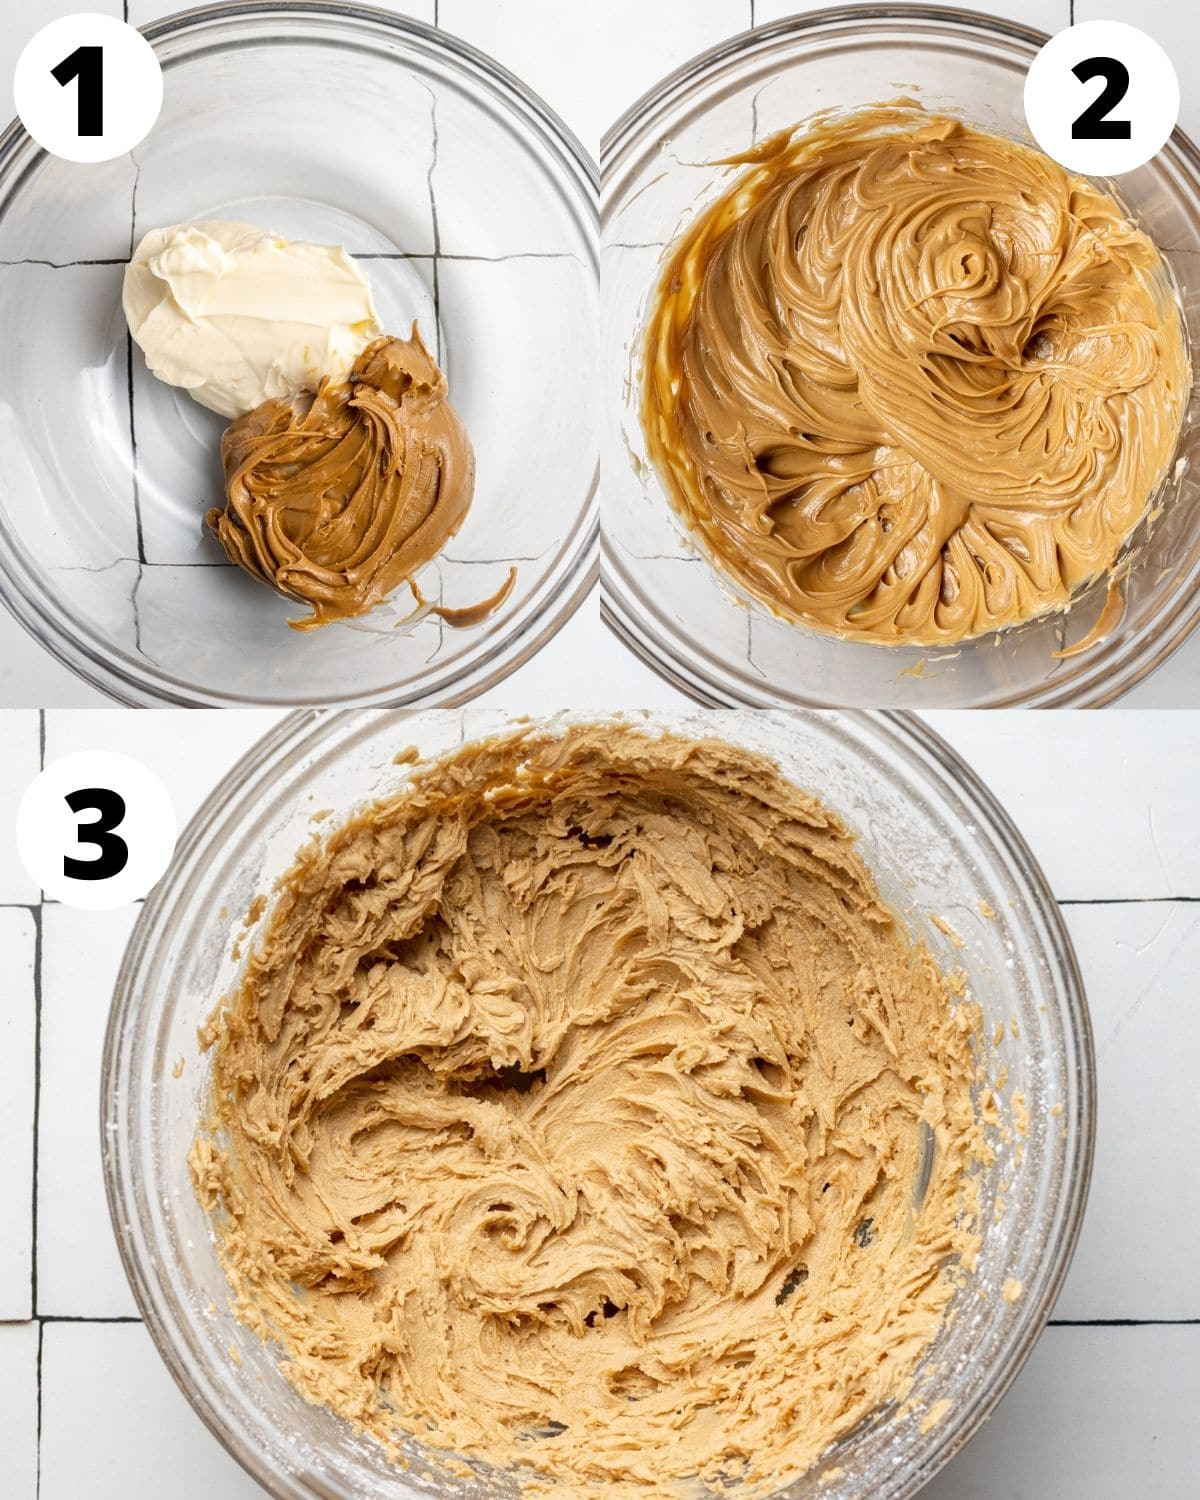 Step by step instructions showing how to make biscoff buttercream